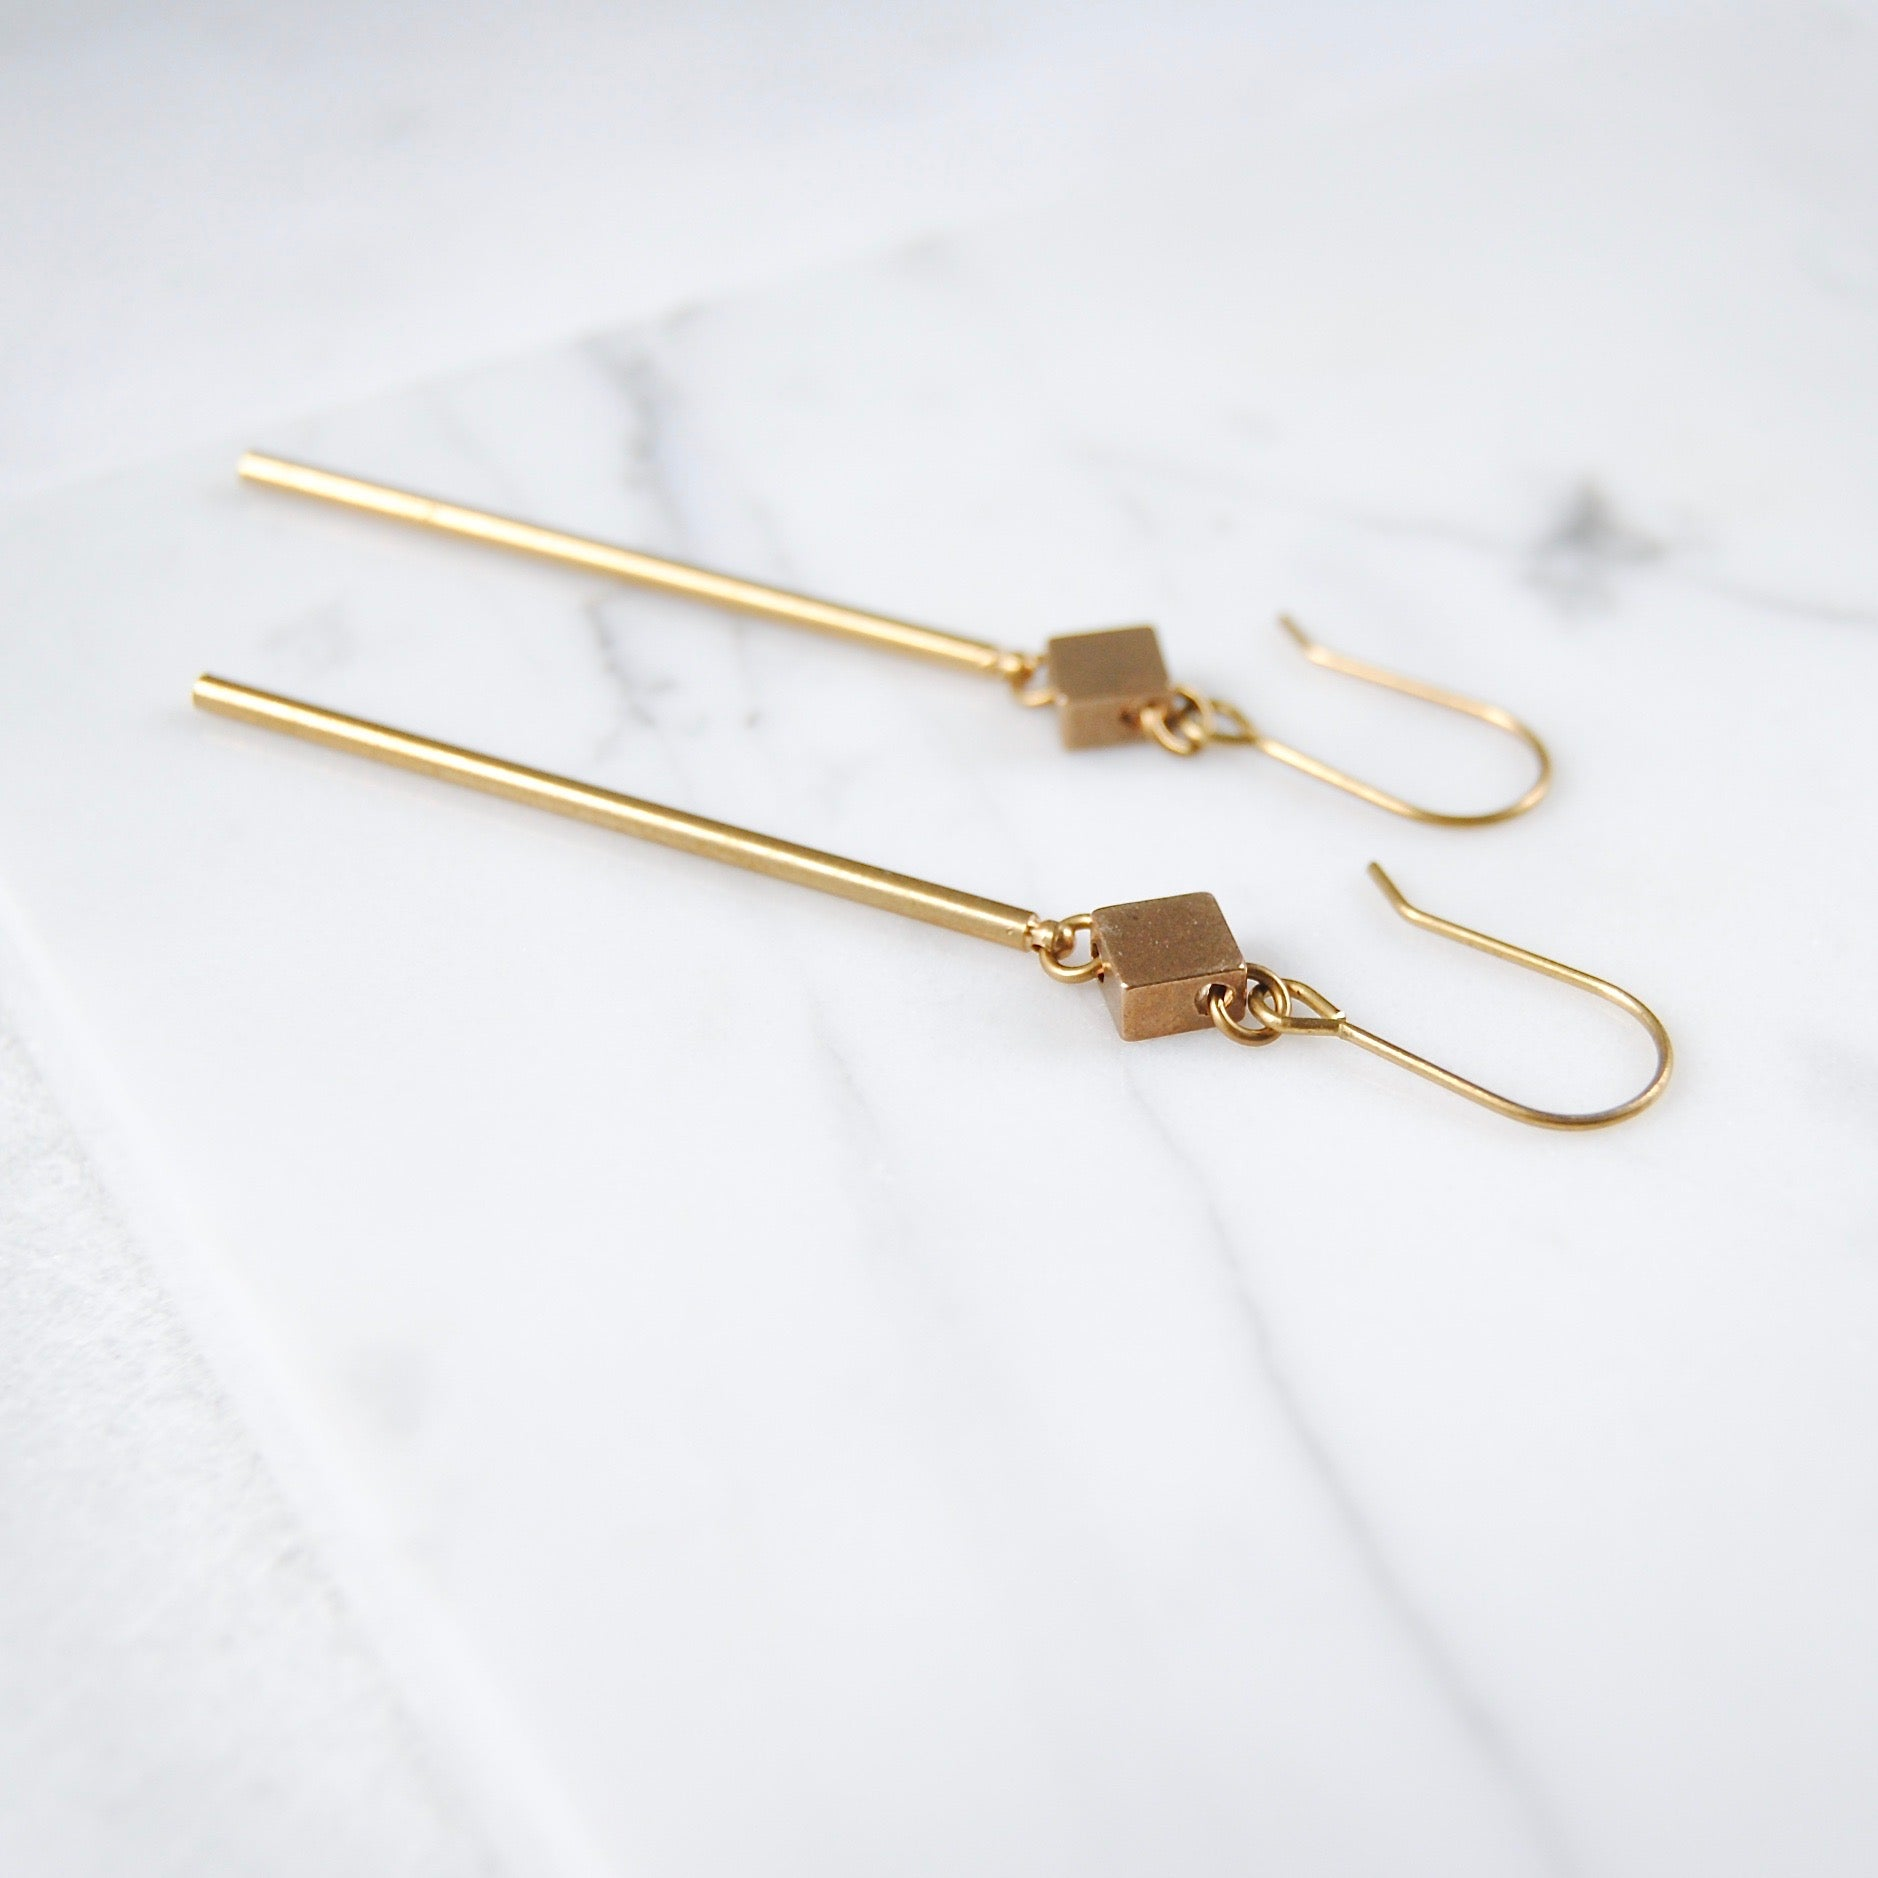 SQUARE AND STICK EARRINGS